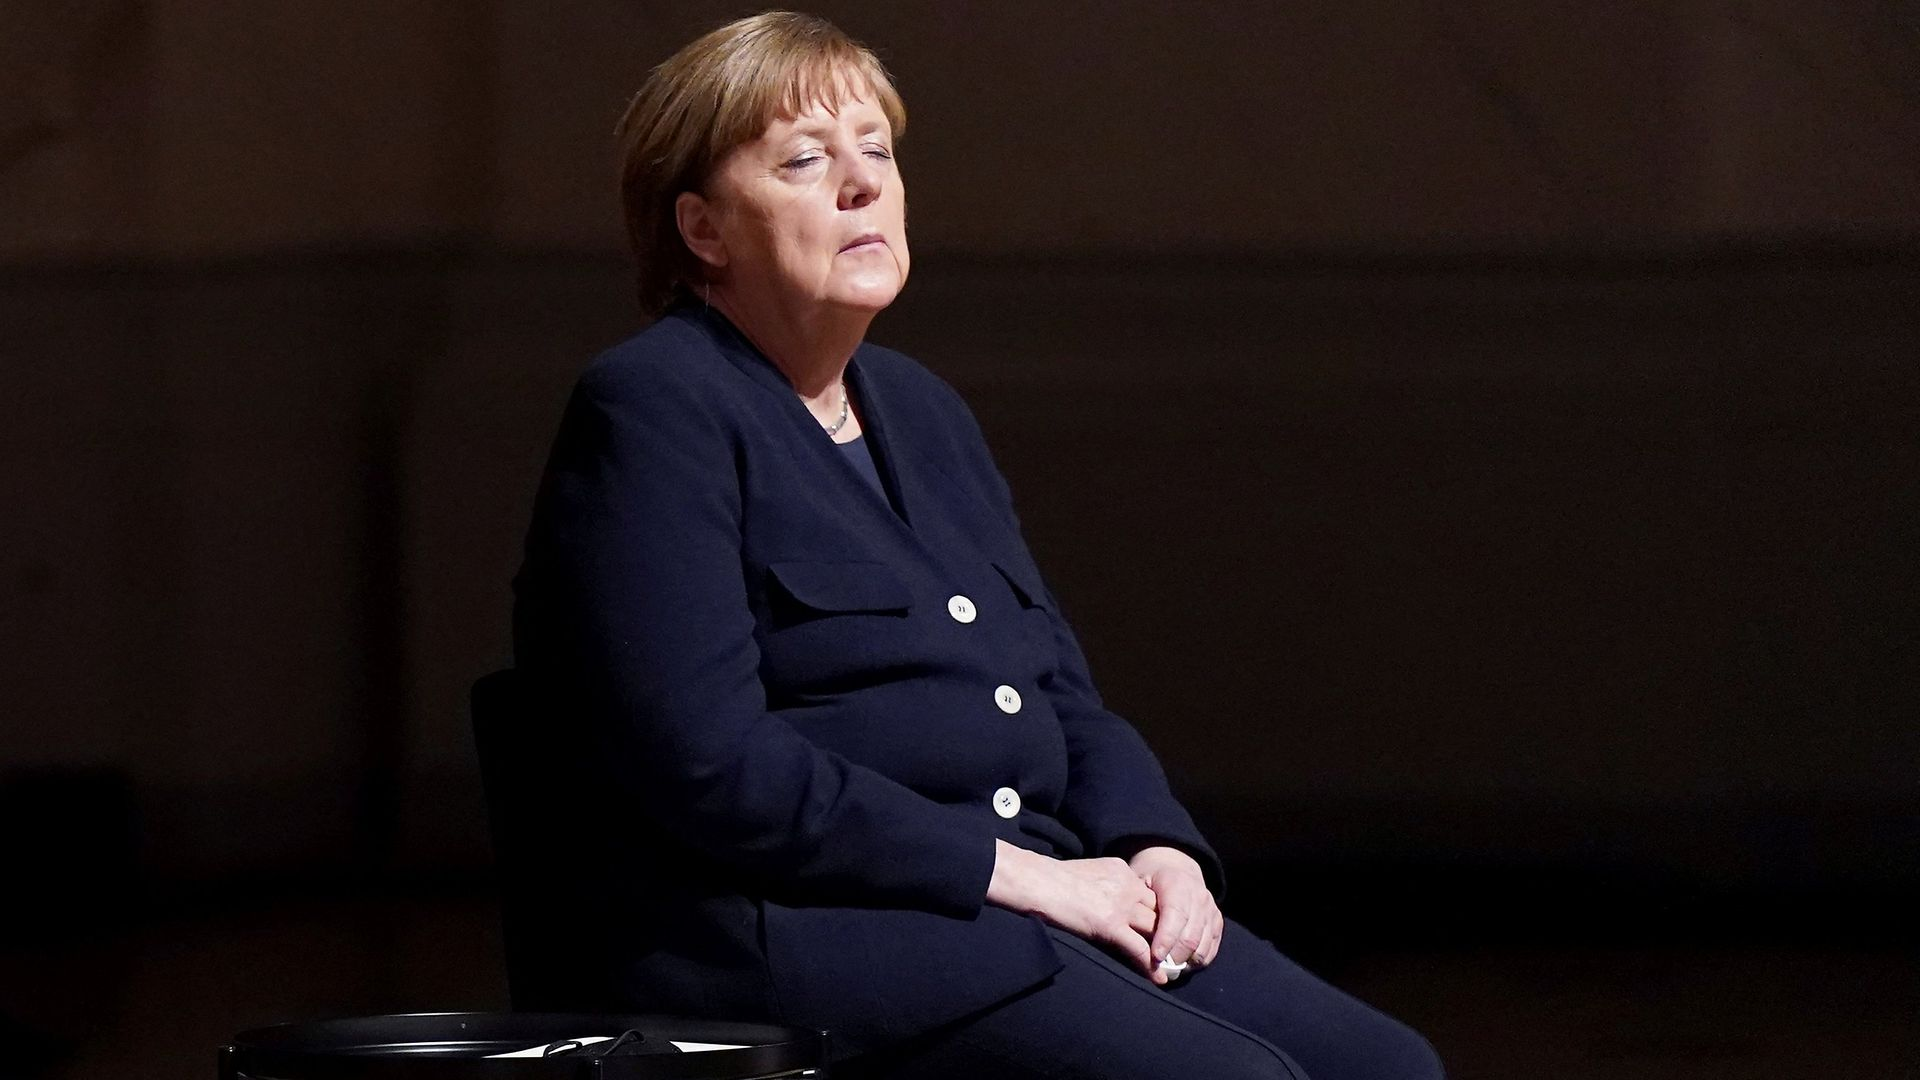 German Chancellor Angela Merkel attends a ceremony for Germany's victims of the coronavirus pandemic - Credit: POOL/AFP via Getty Images